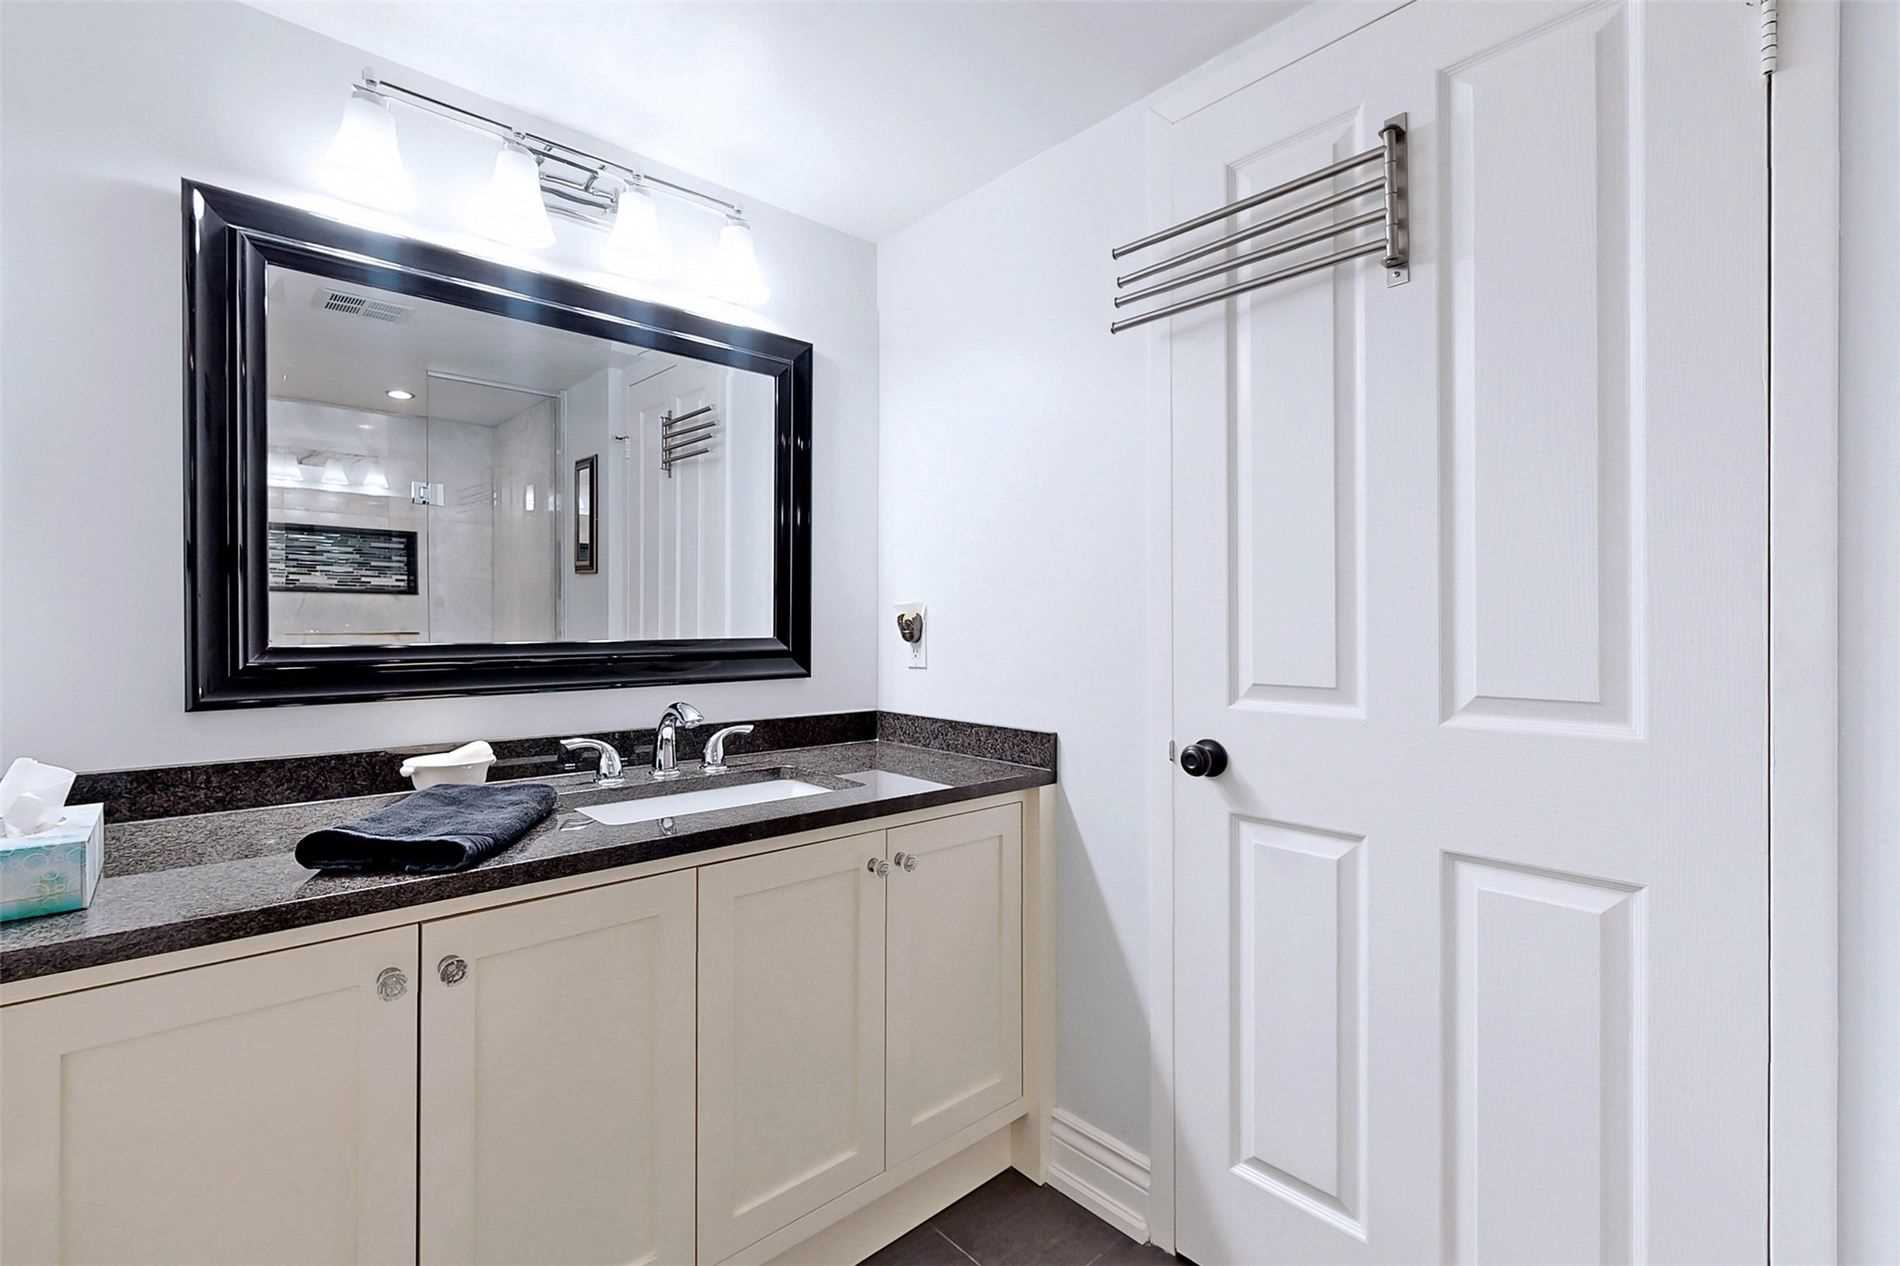 Image 13 of 40 showing inside of 2 Bedroom Condo Apt 2-Storey for Sale at 25 Cumberland Lane Unit# 105, Ajax L1S7K1